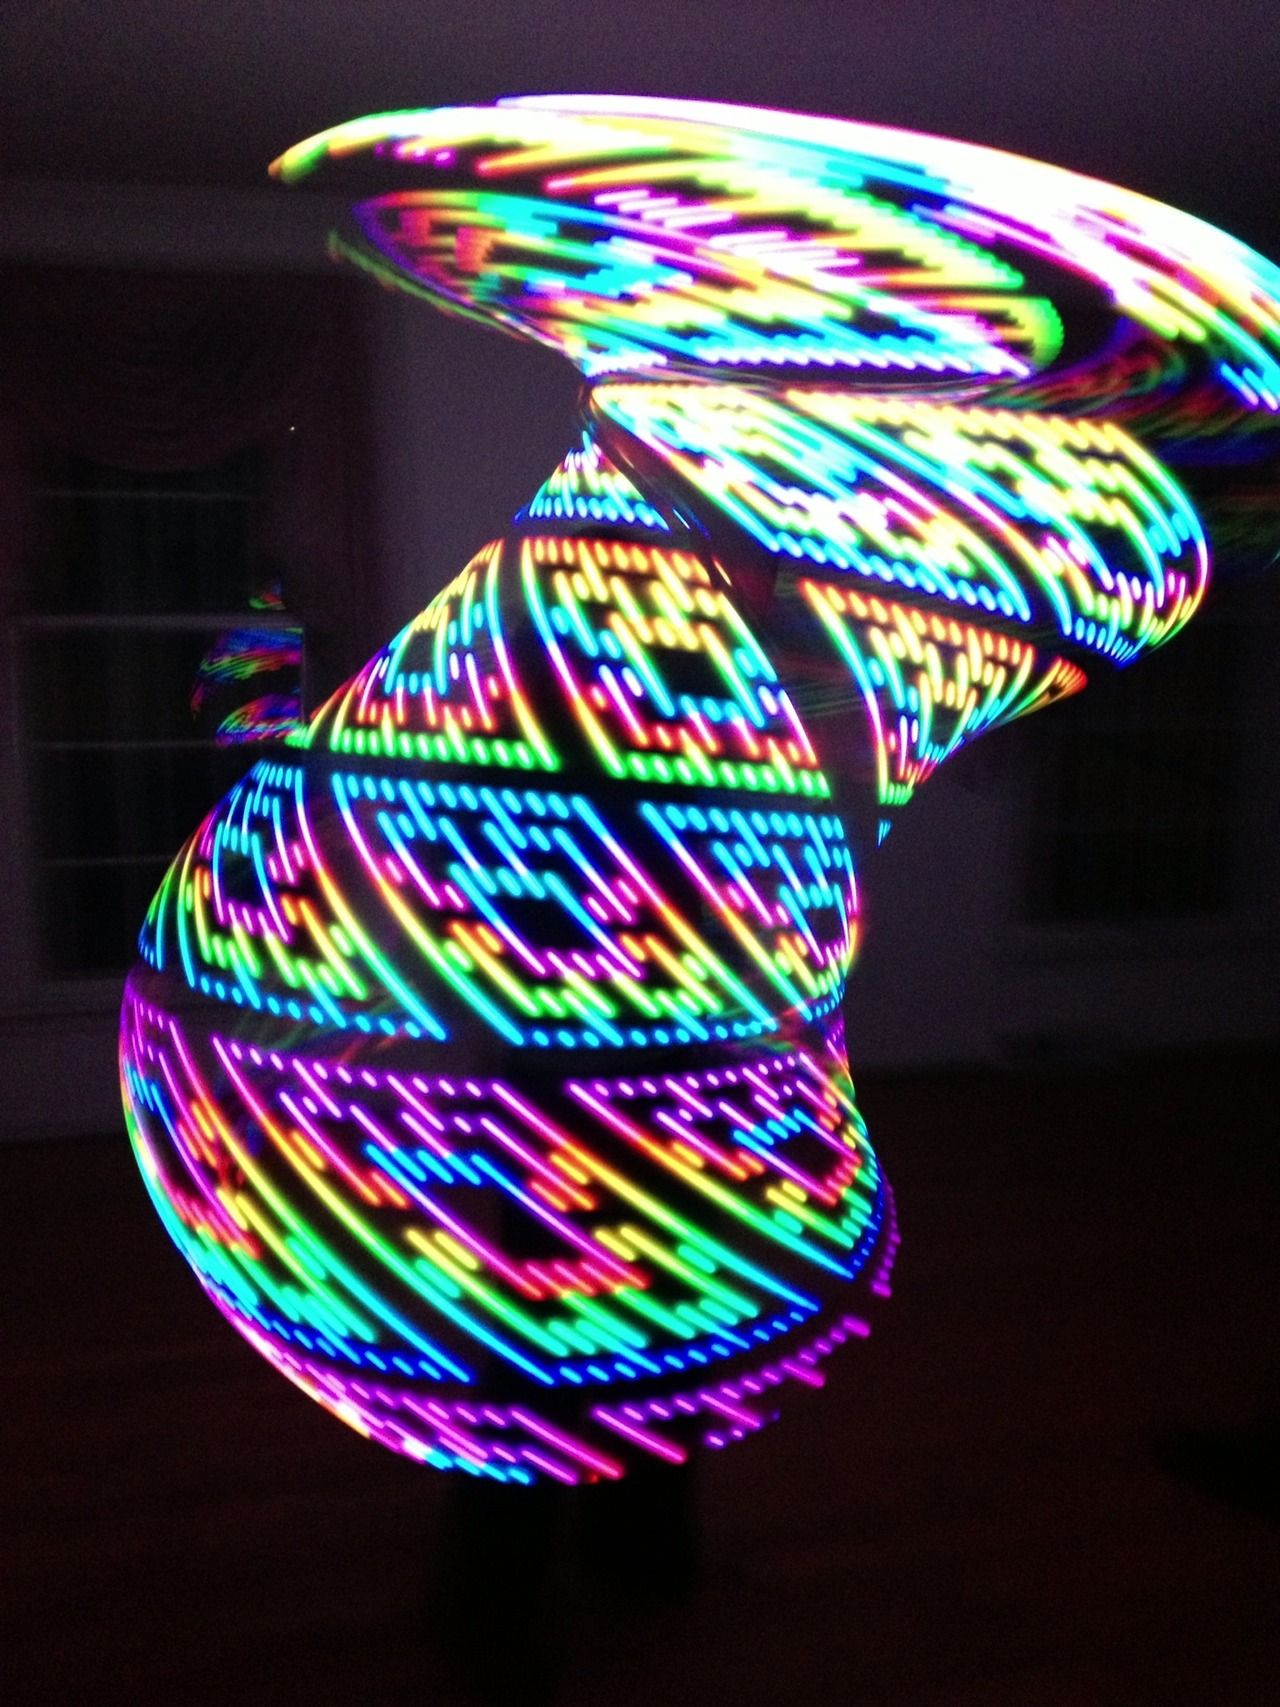 best 25 led hula hoop ideas on pinterest hula hoop led hoops and hula hooping. Black Bedroom Furniture Sets. Home Design Ideas